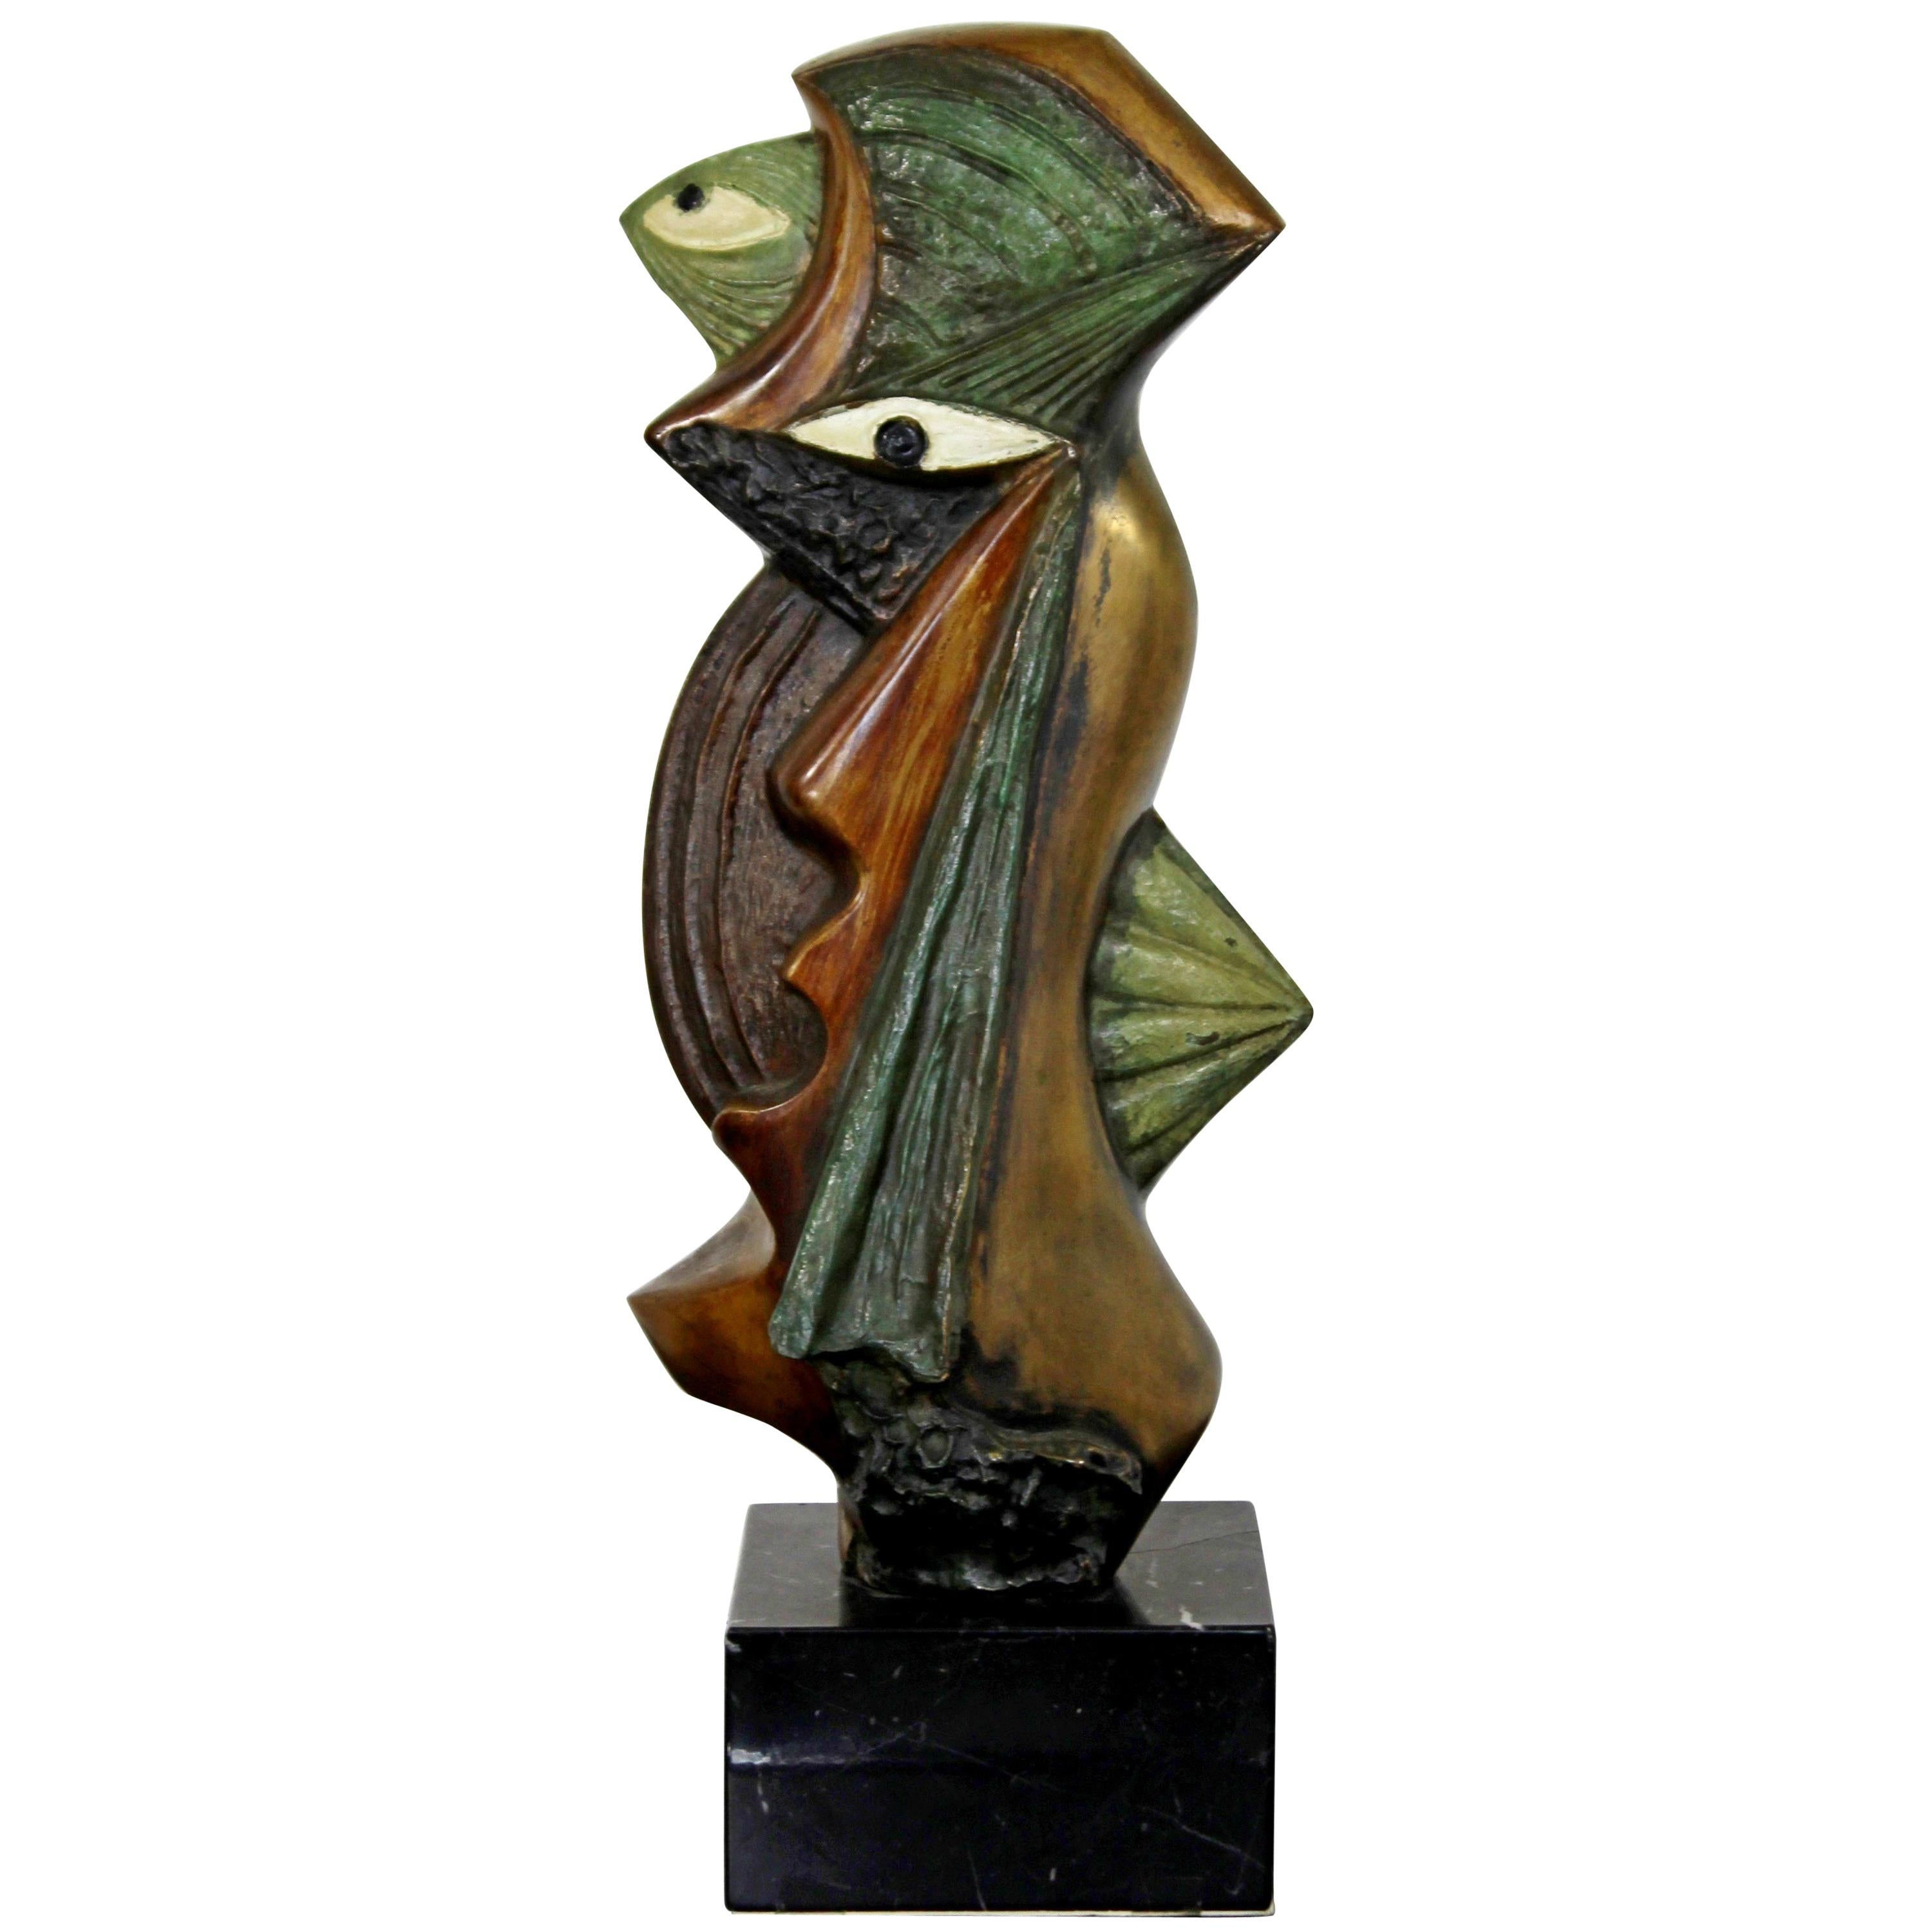 Contemporary Modern Bronze on Marble Table Sculpture Signed by Kieff Grediaga